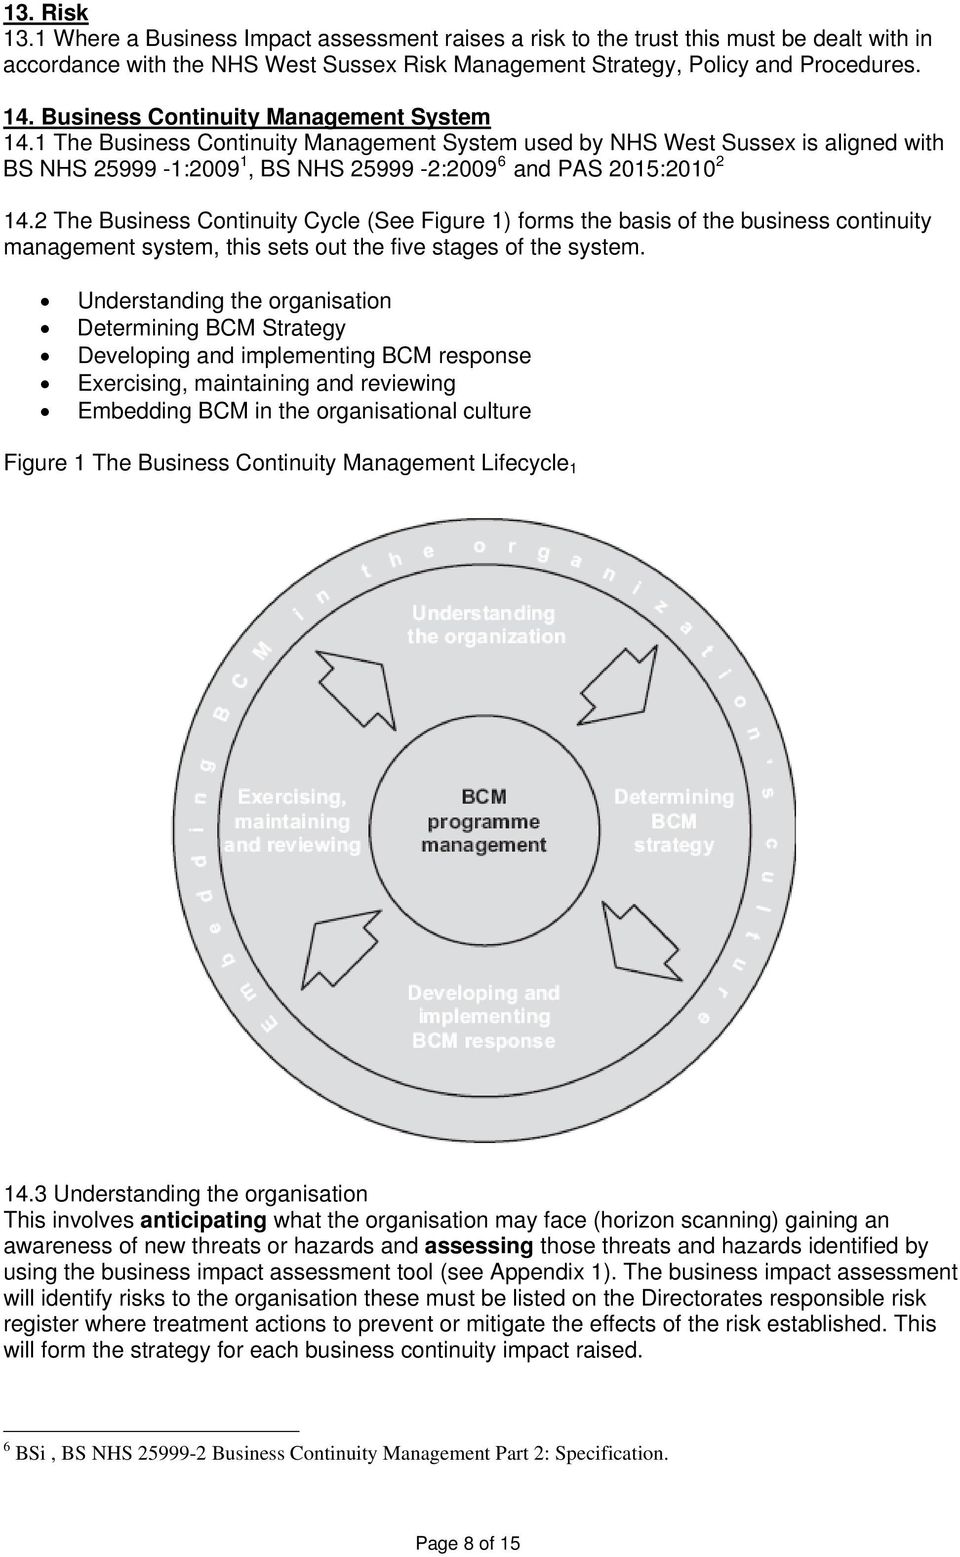 2 The Business Continuity Cycle (See Figure 1) forms the basis of the business continuity management system, this sets out the five stages of the system.